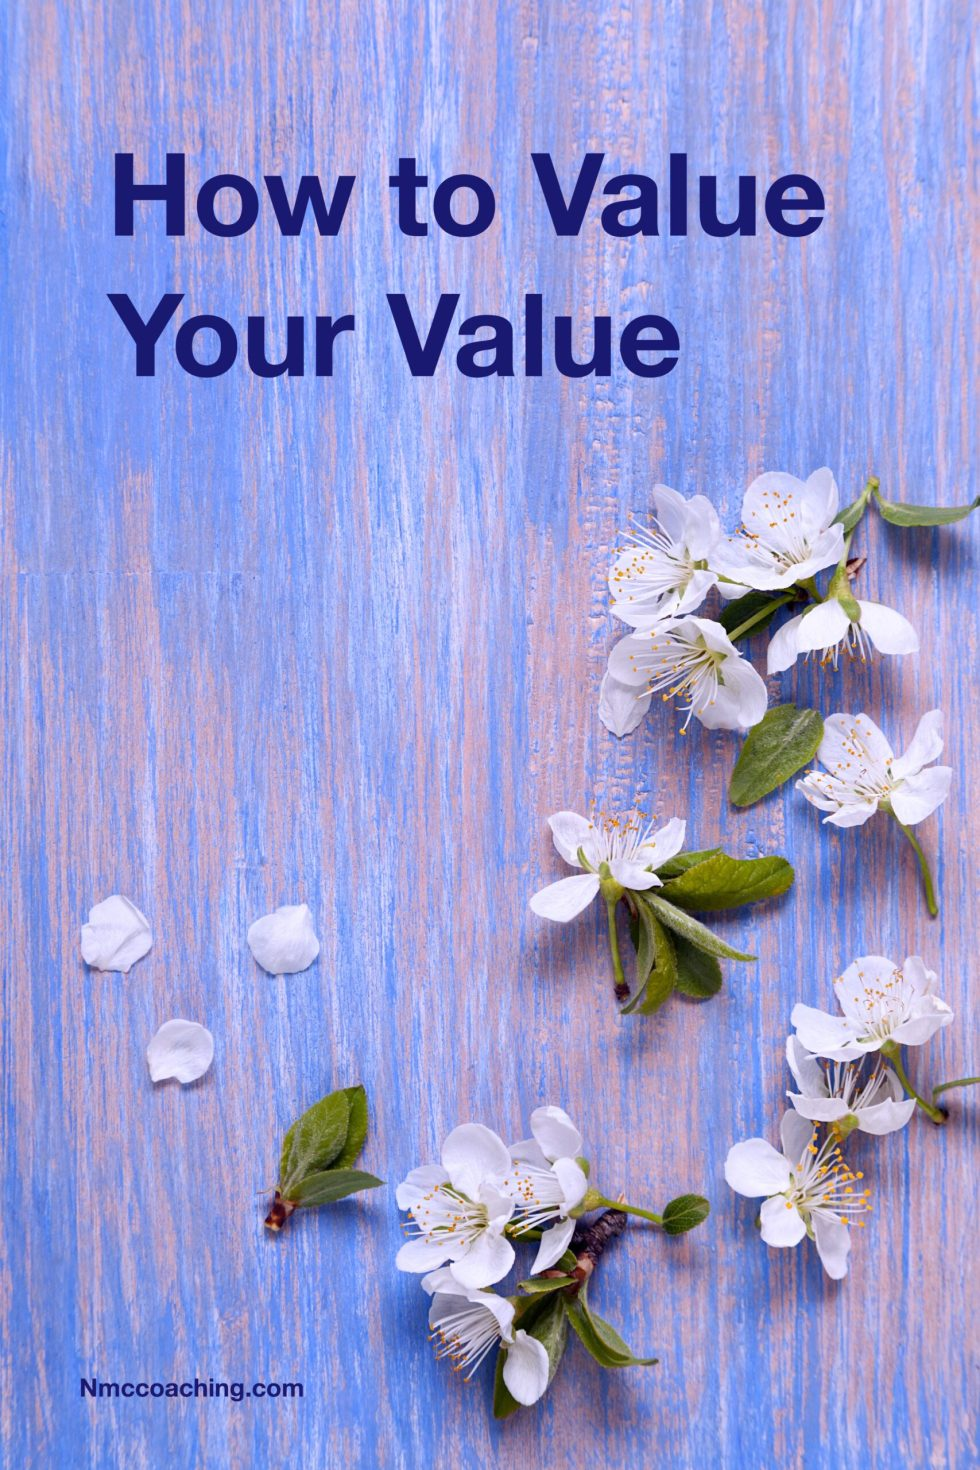 Valuing your value